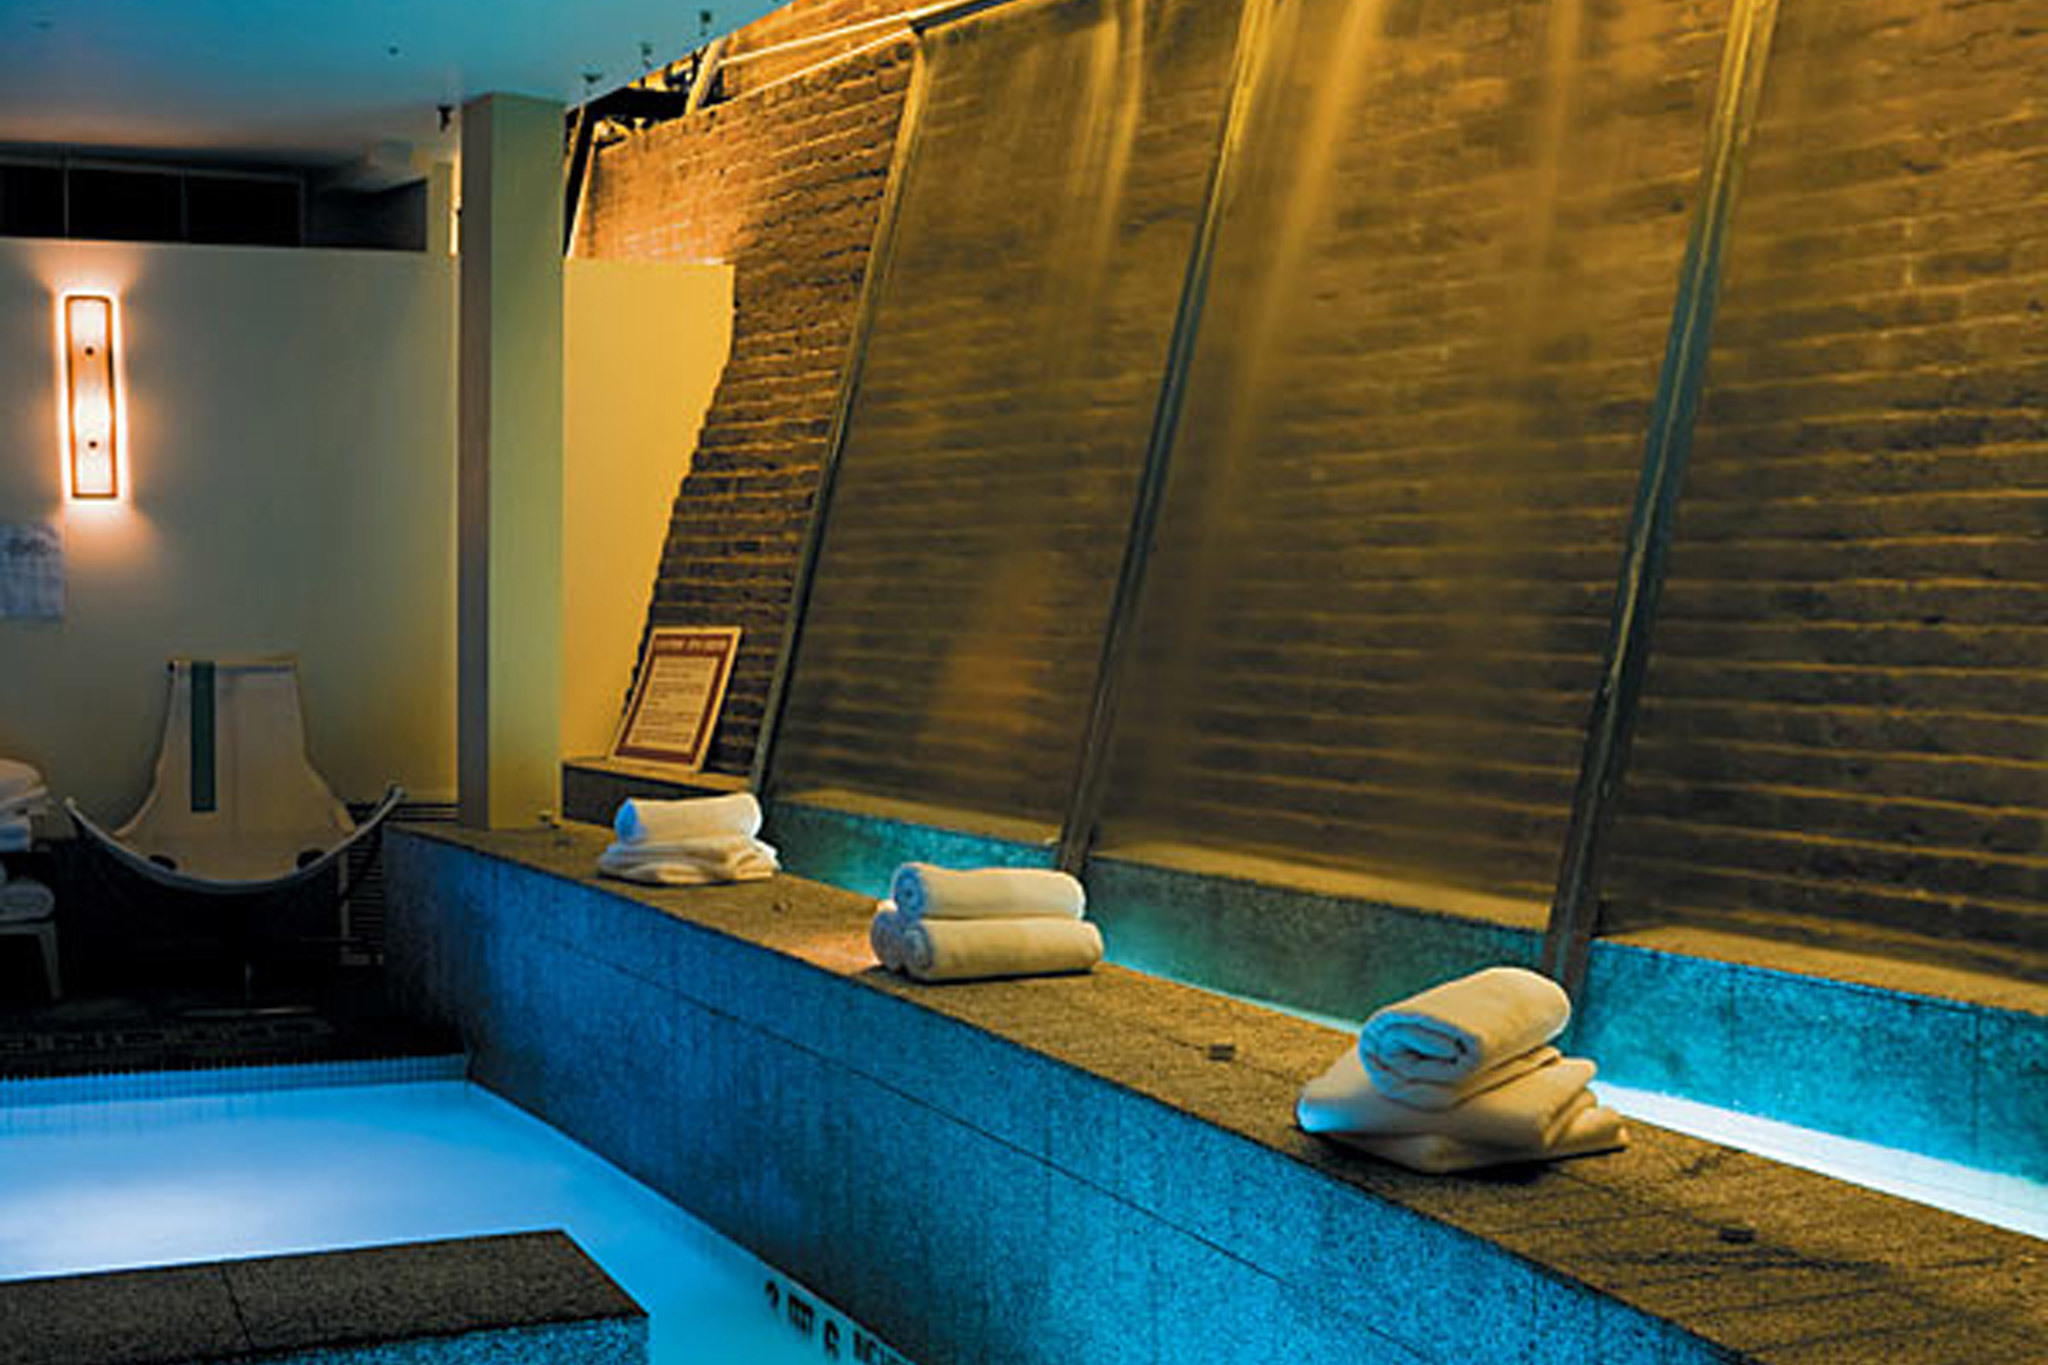 22 best spas in nyc for massages manicures and facials for Spa services near me